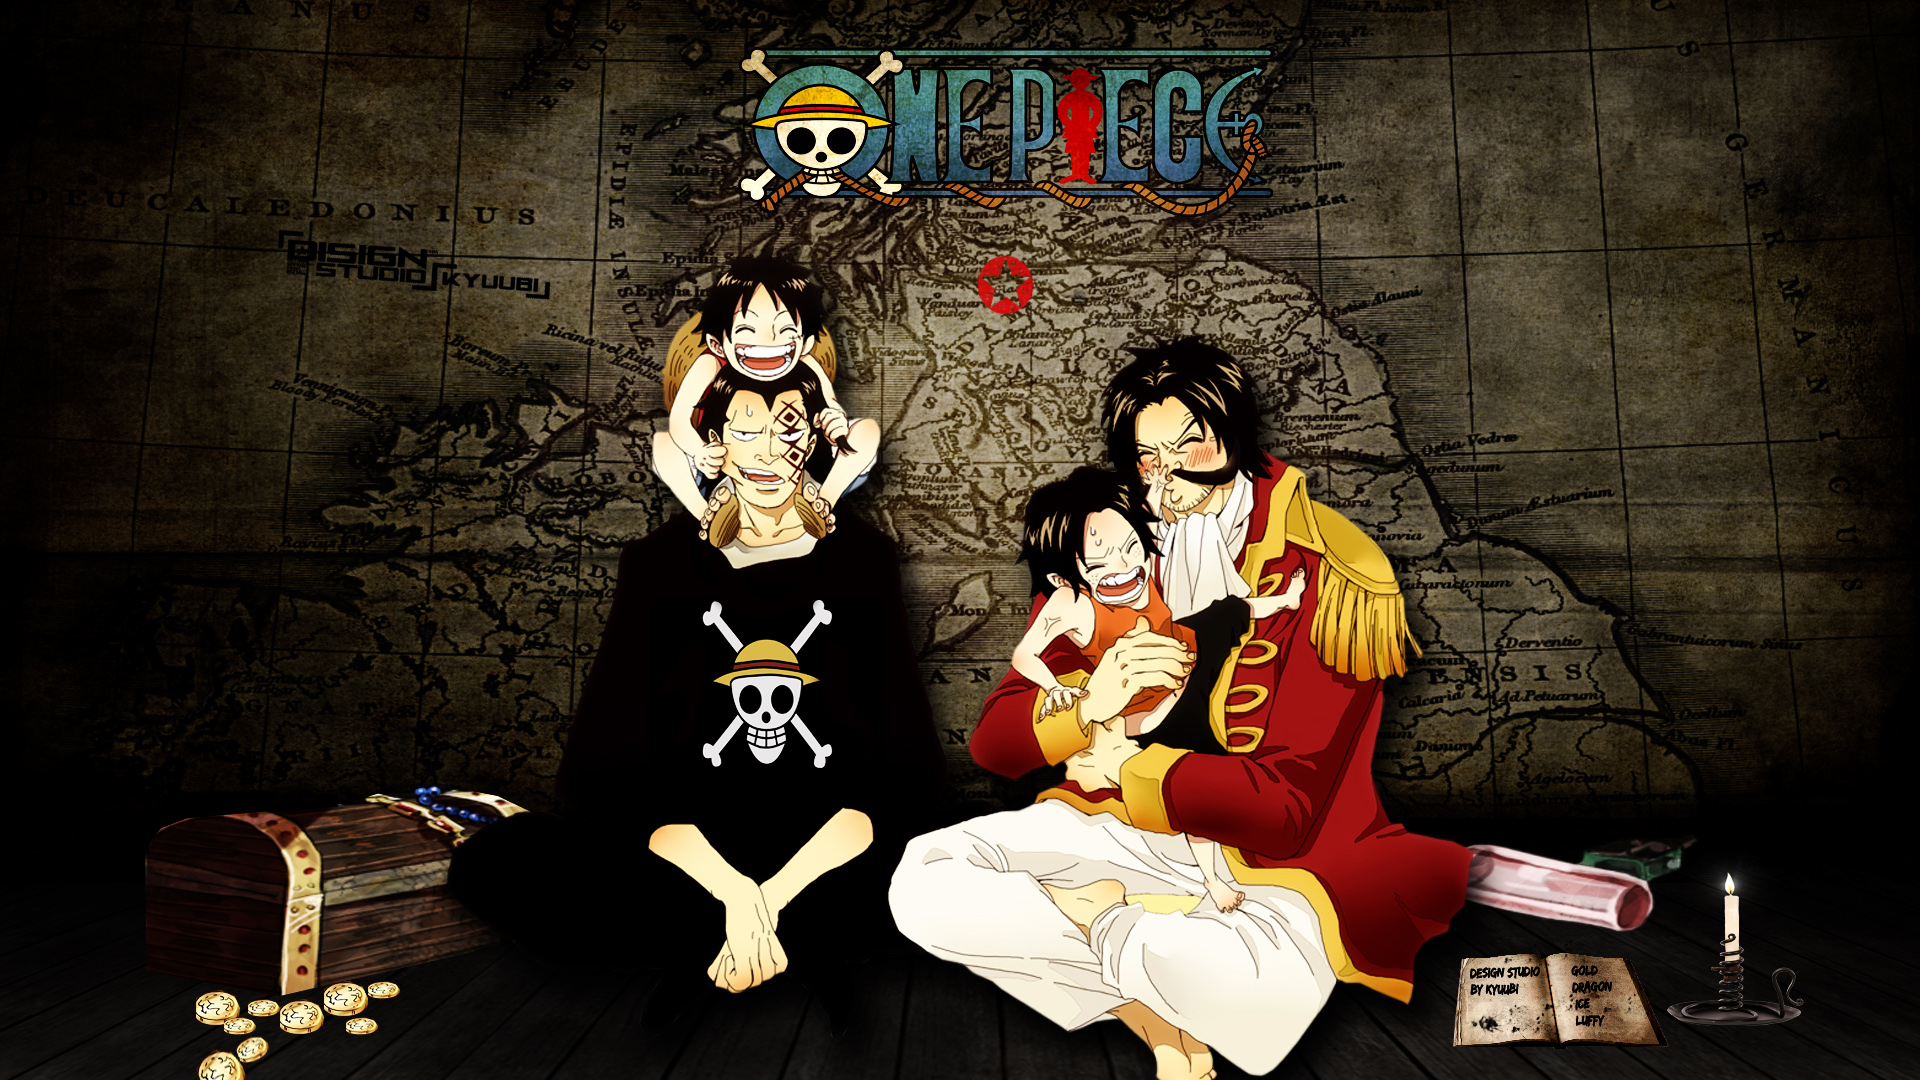 monkey d. luffy, hd wallpaper - zerochan anime image board